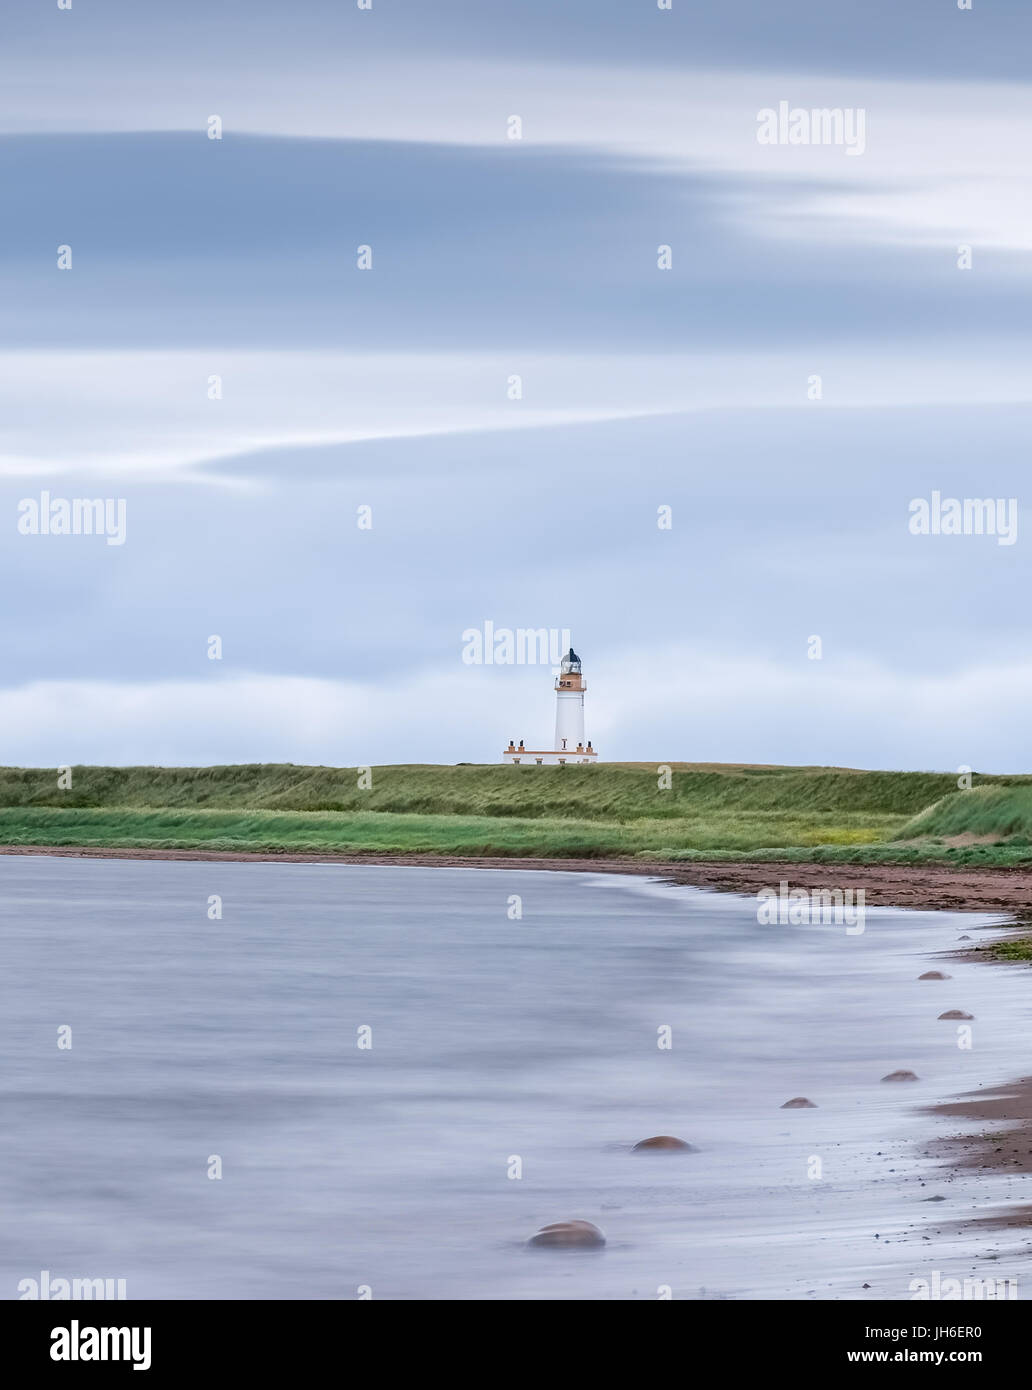 The Old Lighthouse in Turnberry Scotland on a cold july day. - Stock Image